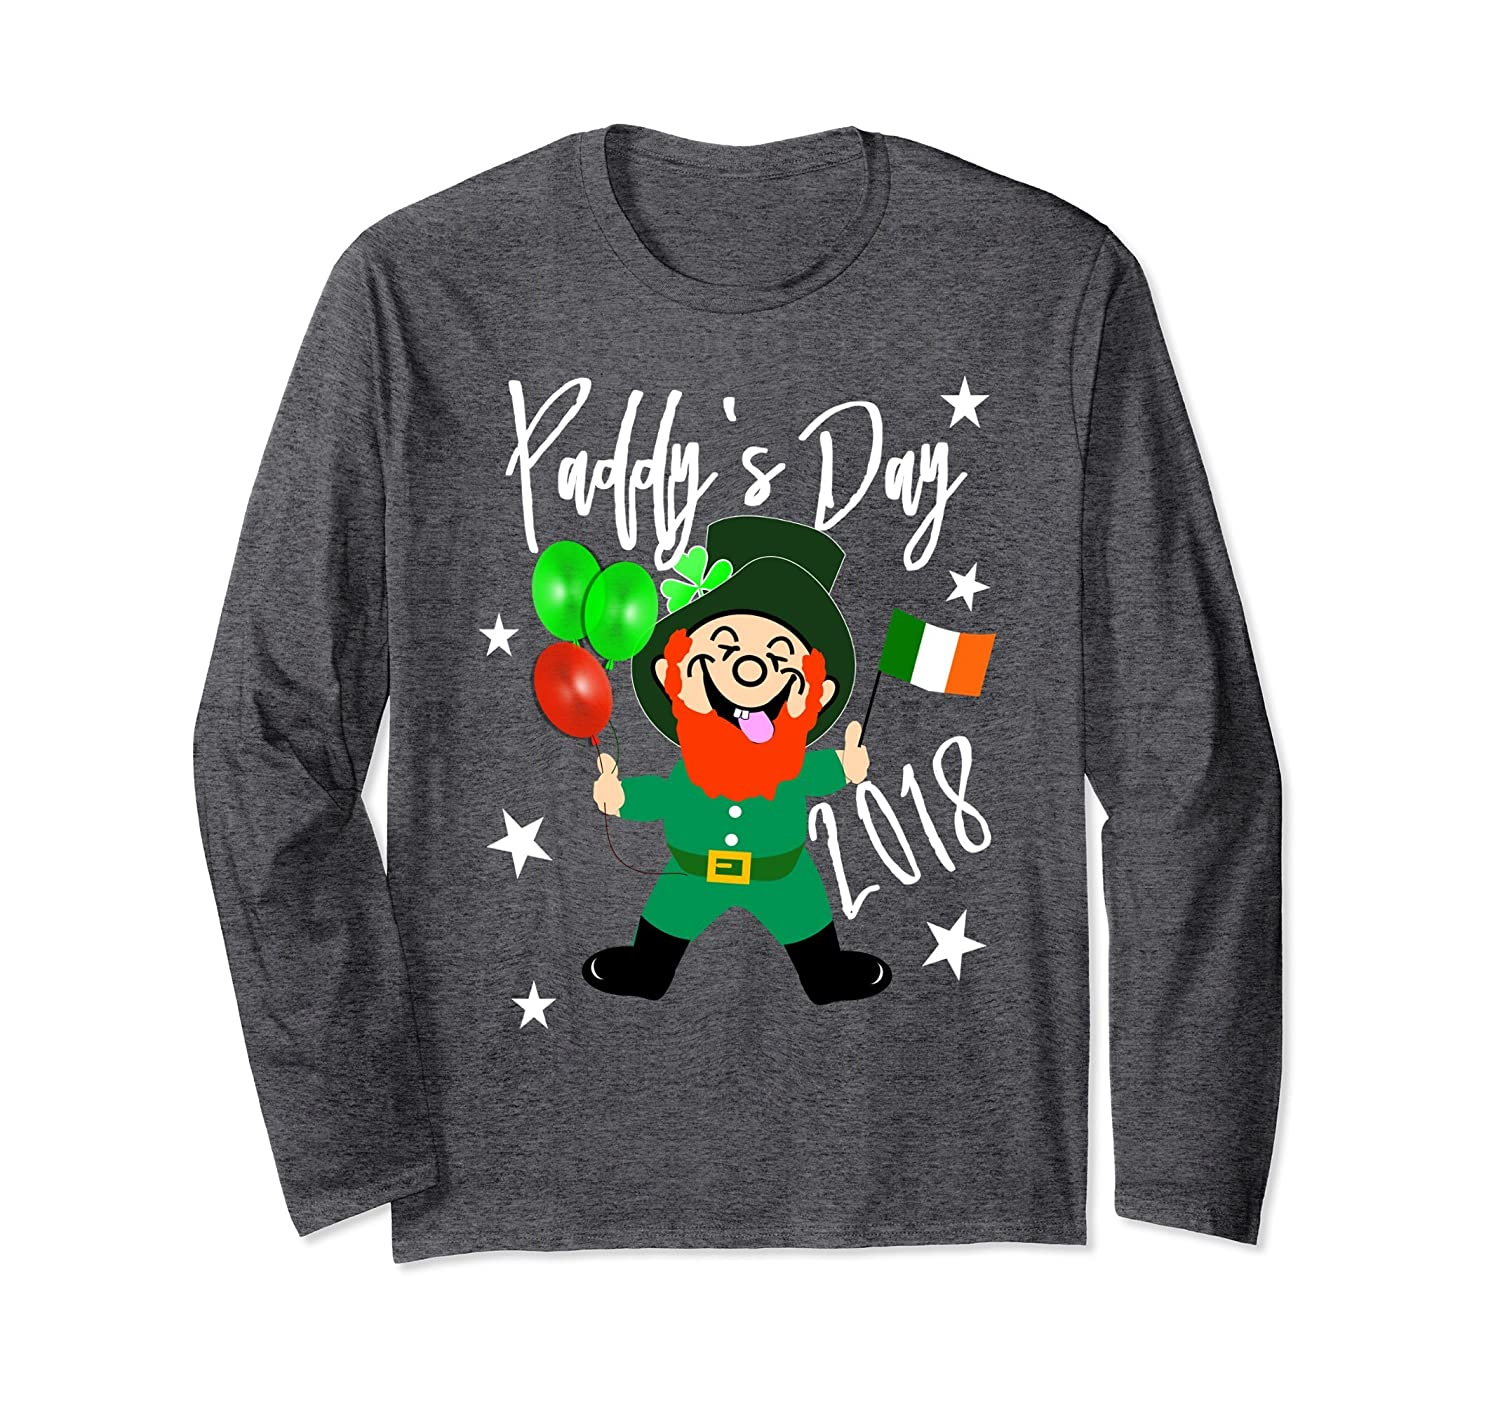 2018 Paddy's Day Fun Leprechaun Novelty Party Shirts